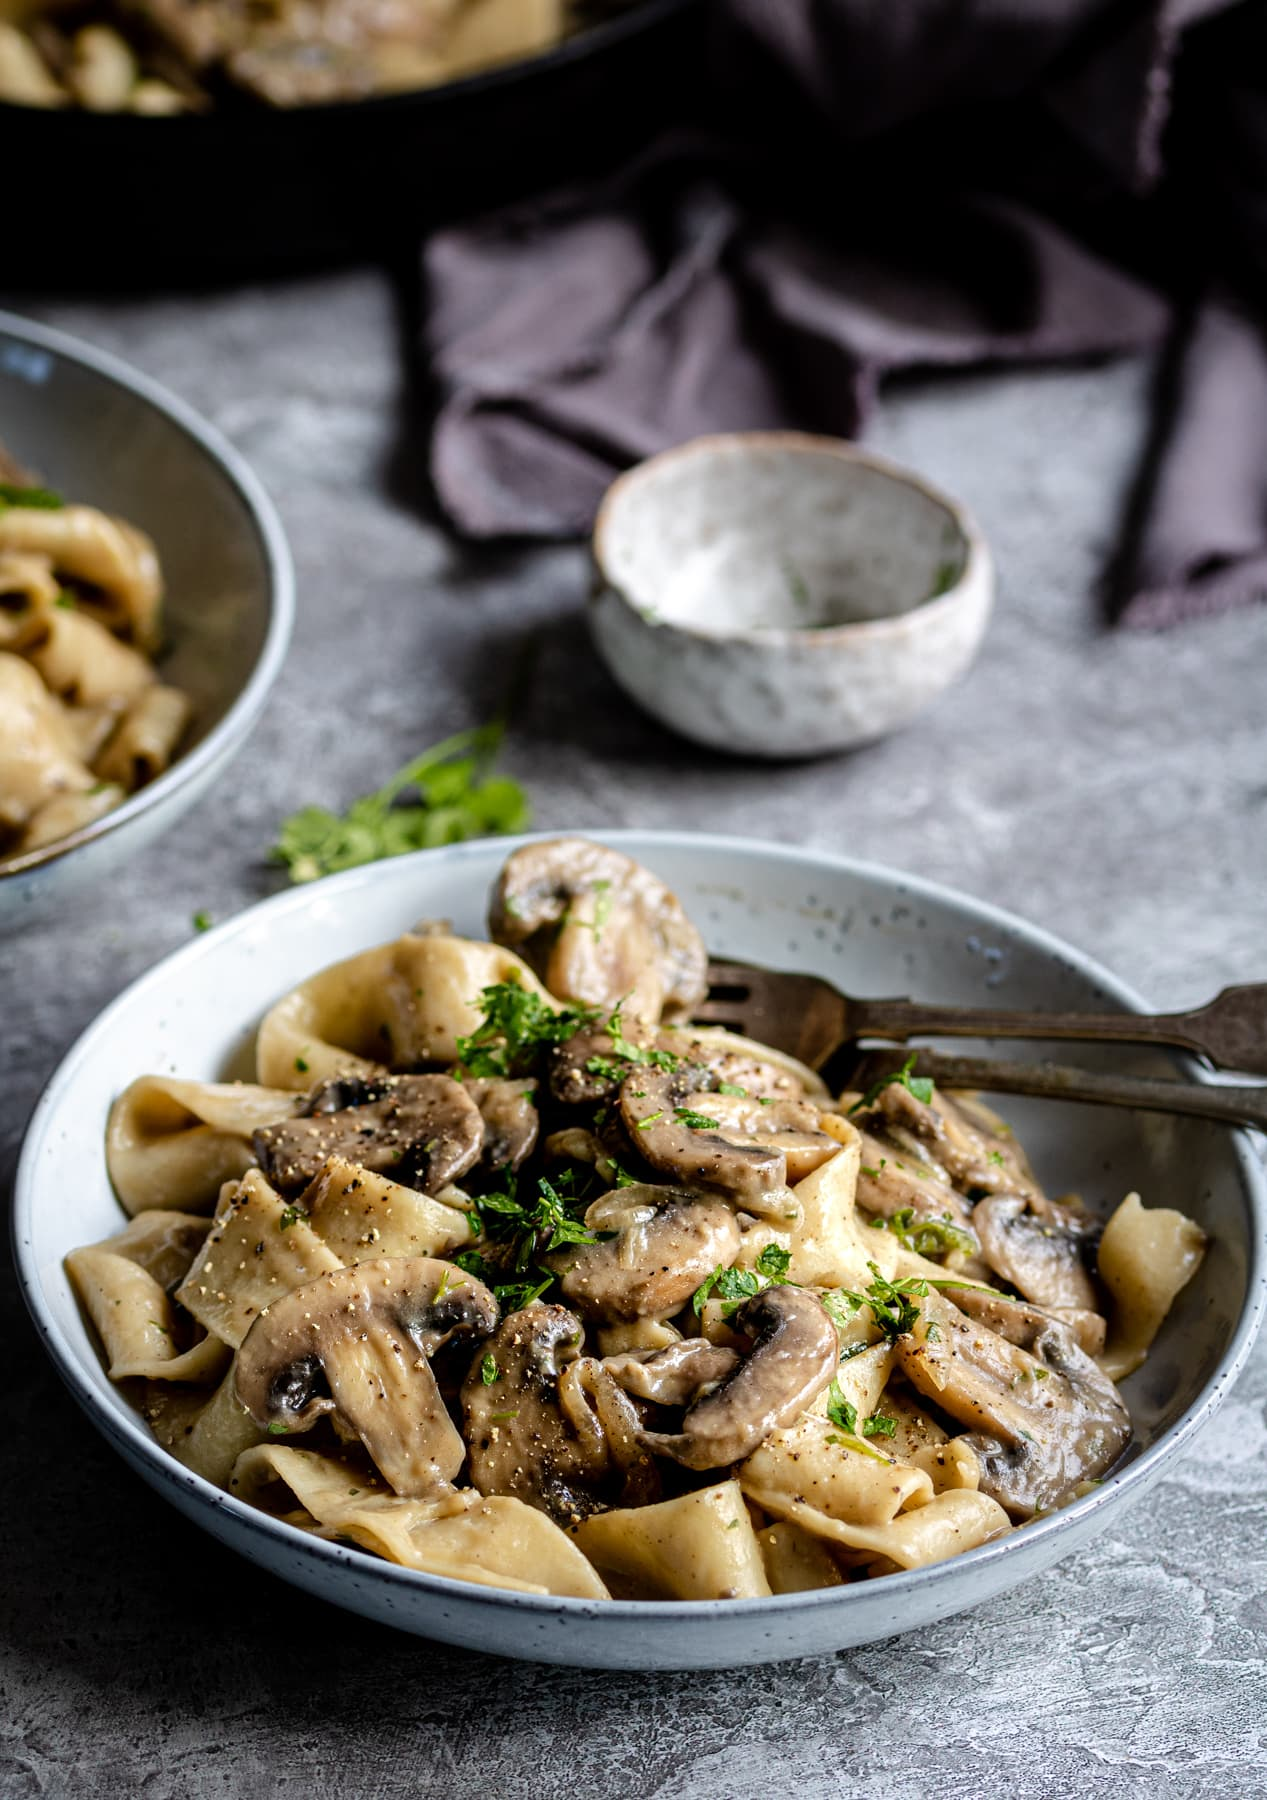 Mushrooms and pasta in a creamy sauce and parsley garnish